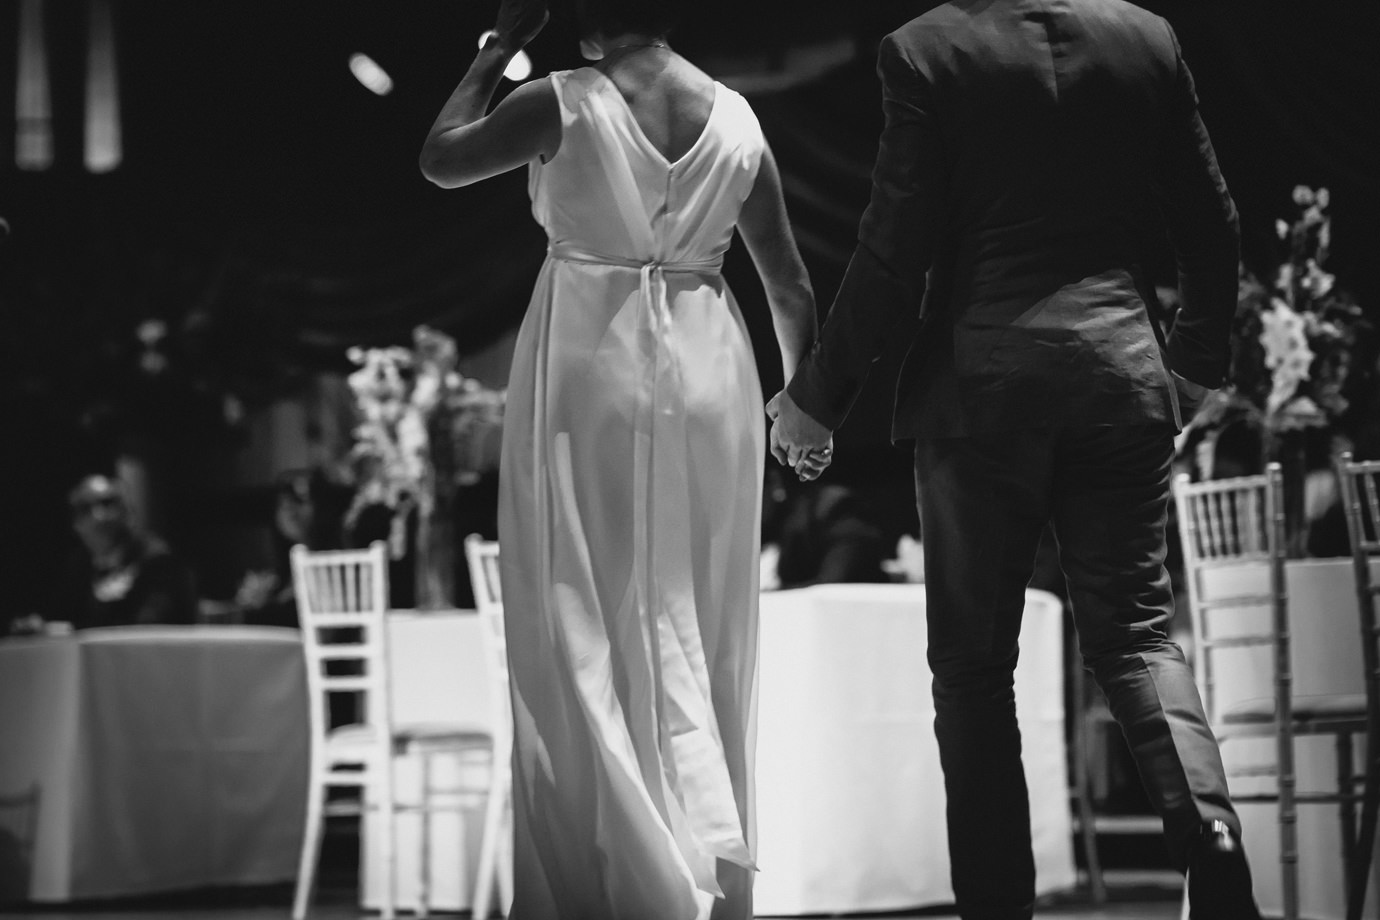 Couple holding hands on stage, Royal Festival Hall, documentary wedding photography